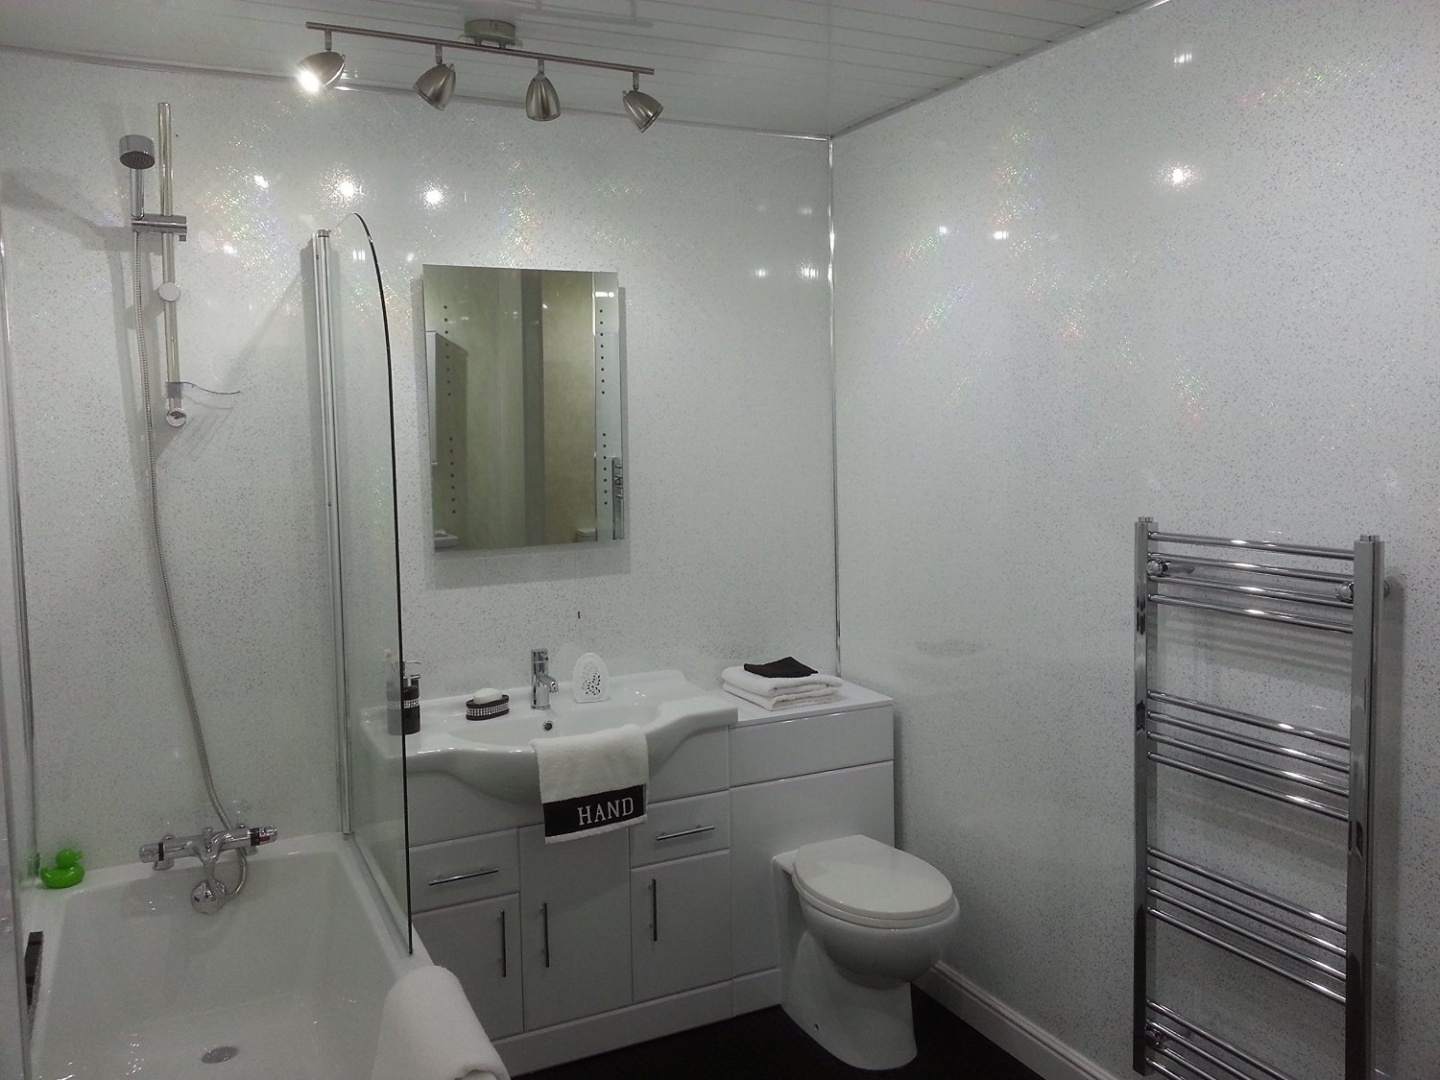 5 White Sparkle Diamond Effect Pvc Bathroom Cladding Shower Wall Panels By Bcs Panels Shop Online For Homeware In Fiji